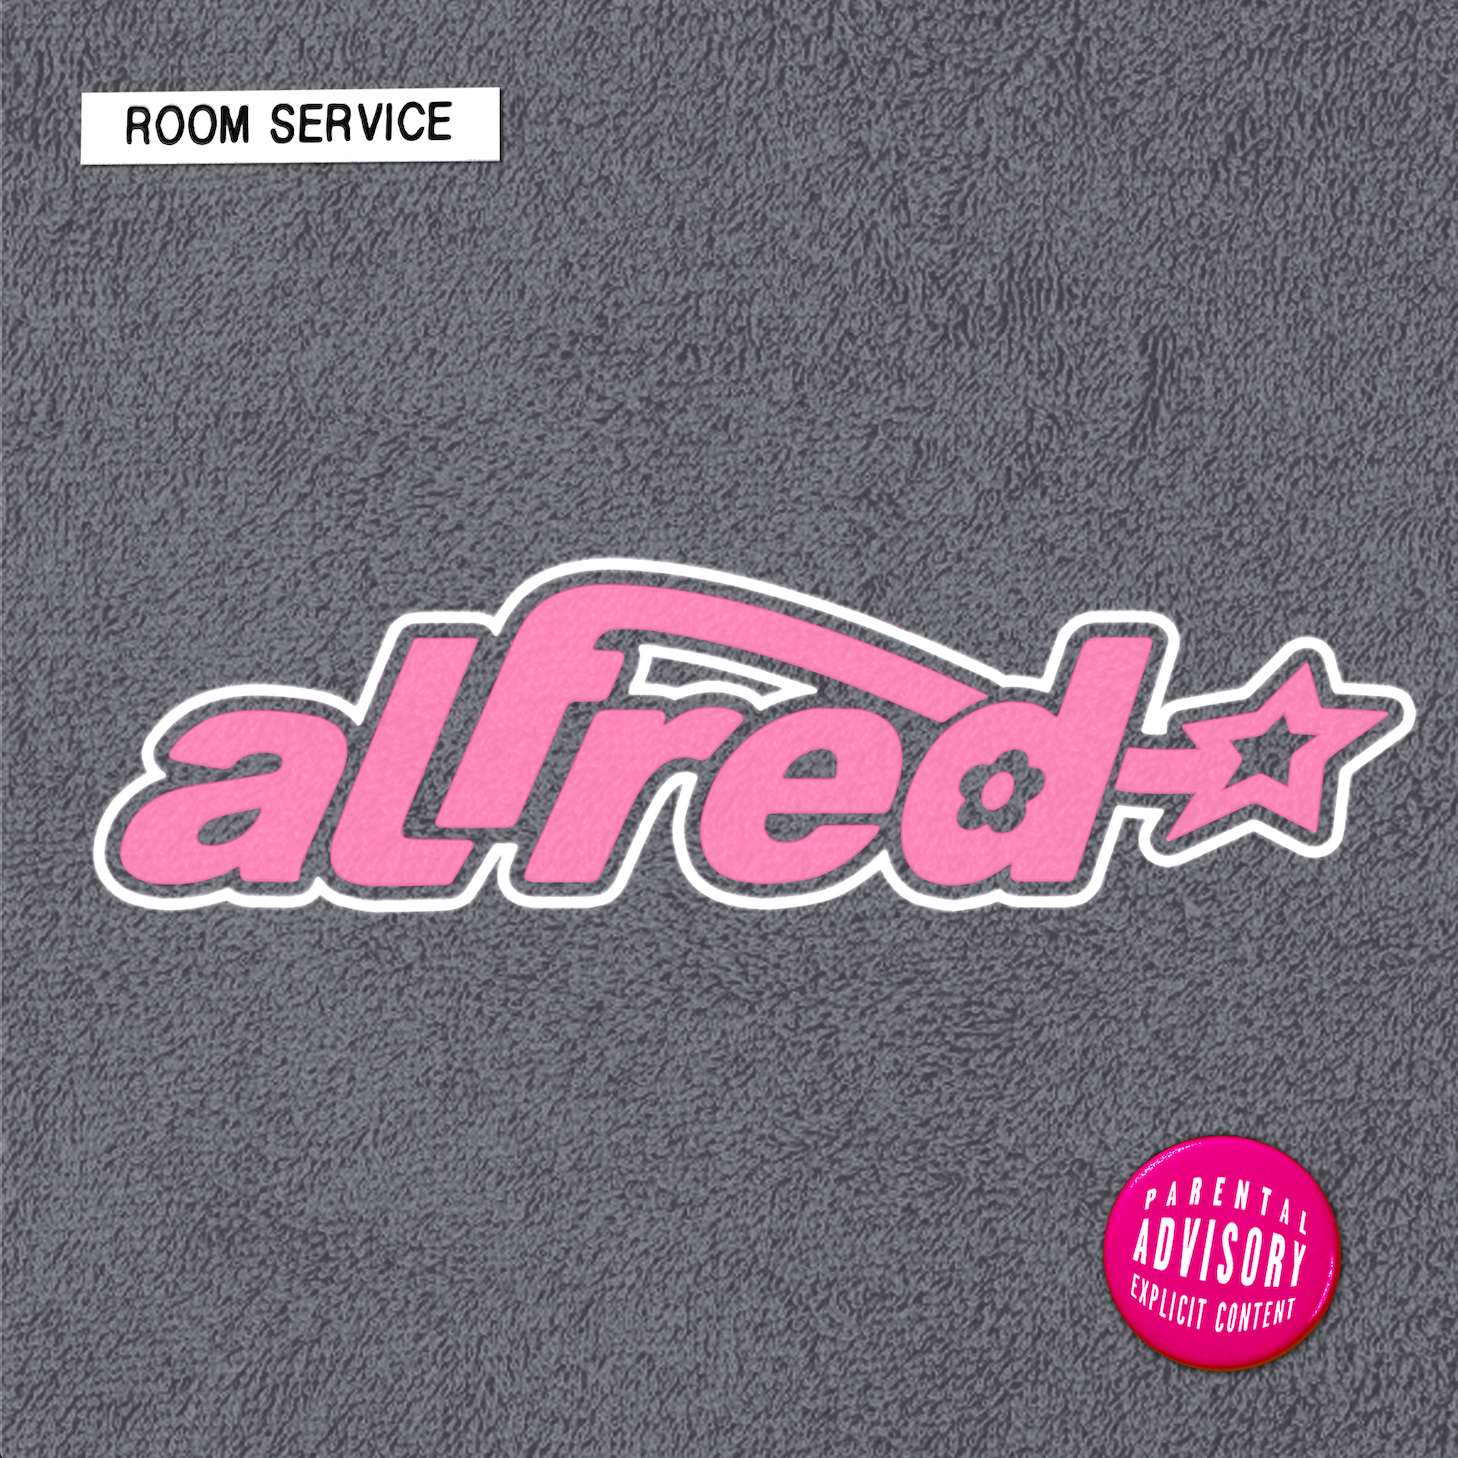 ALFRED SINGLE ROOM SERVICE ALBUM